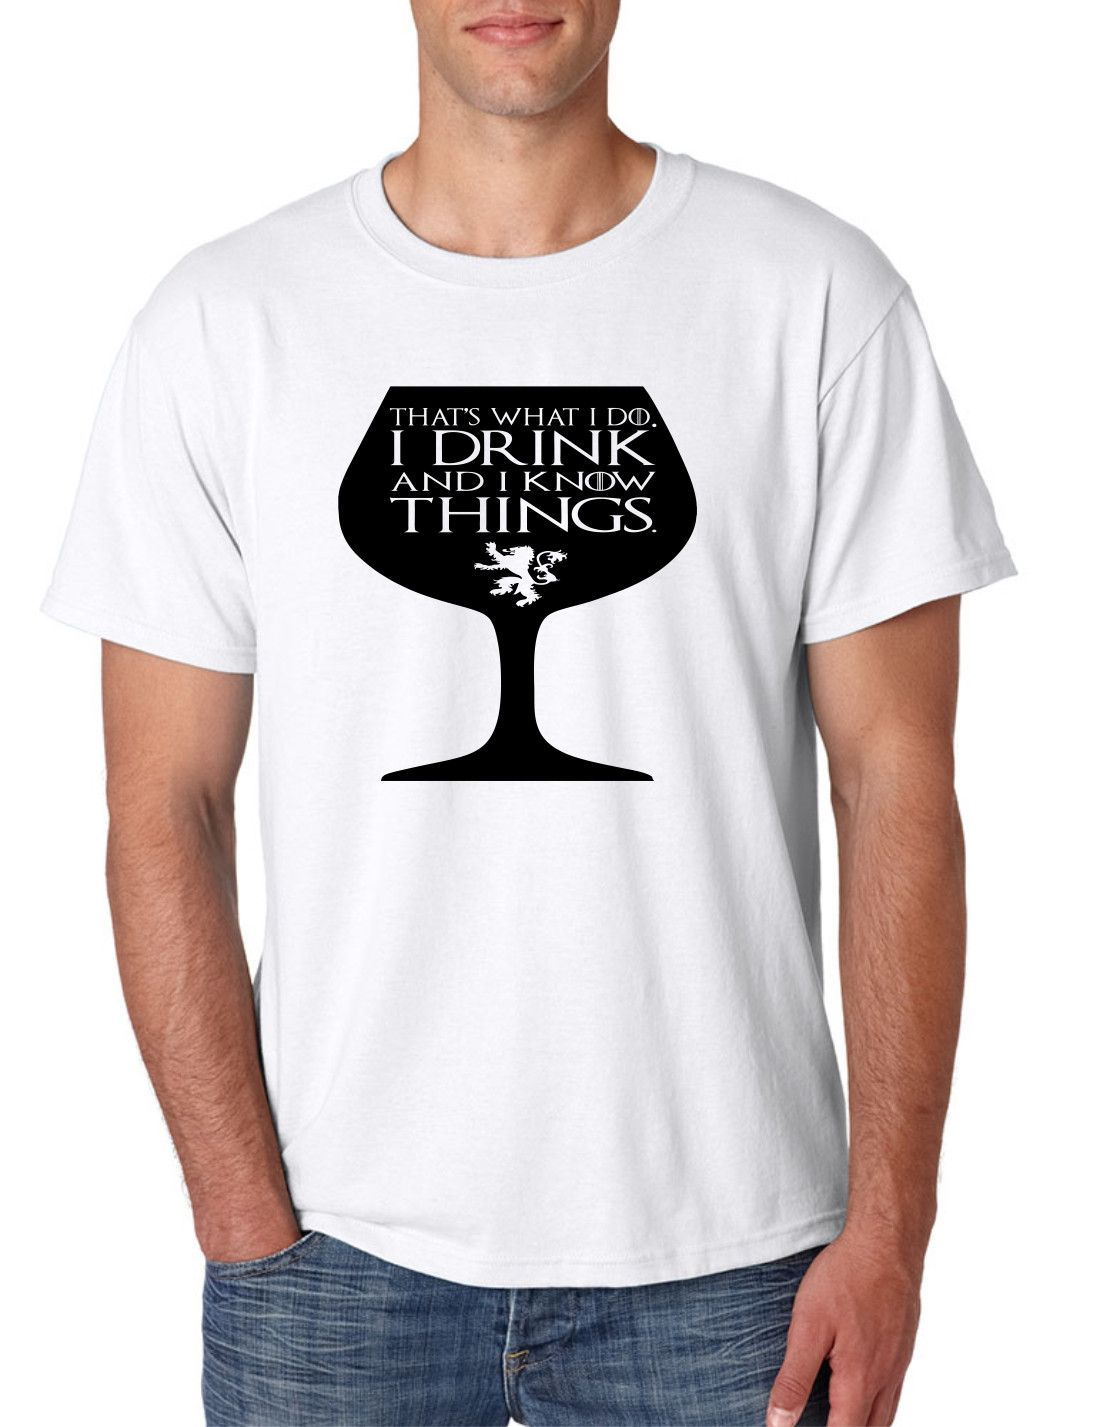 T-Shirts Thats what I do I drink Game of Thrones inspired Tyrion t shirt Kleidung & Accessoires